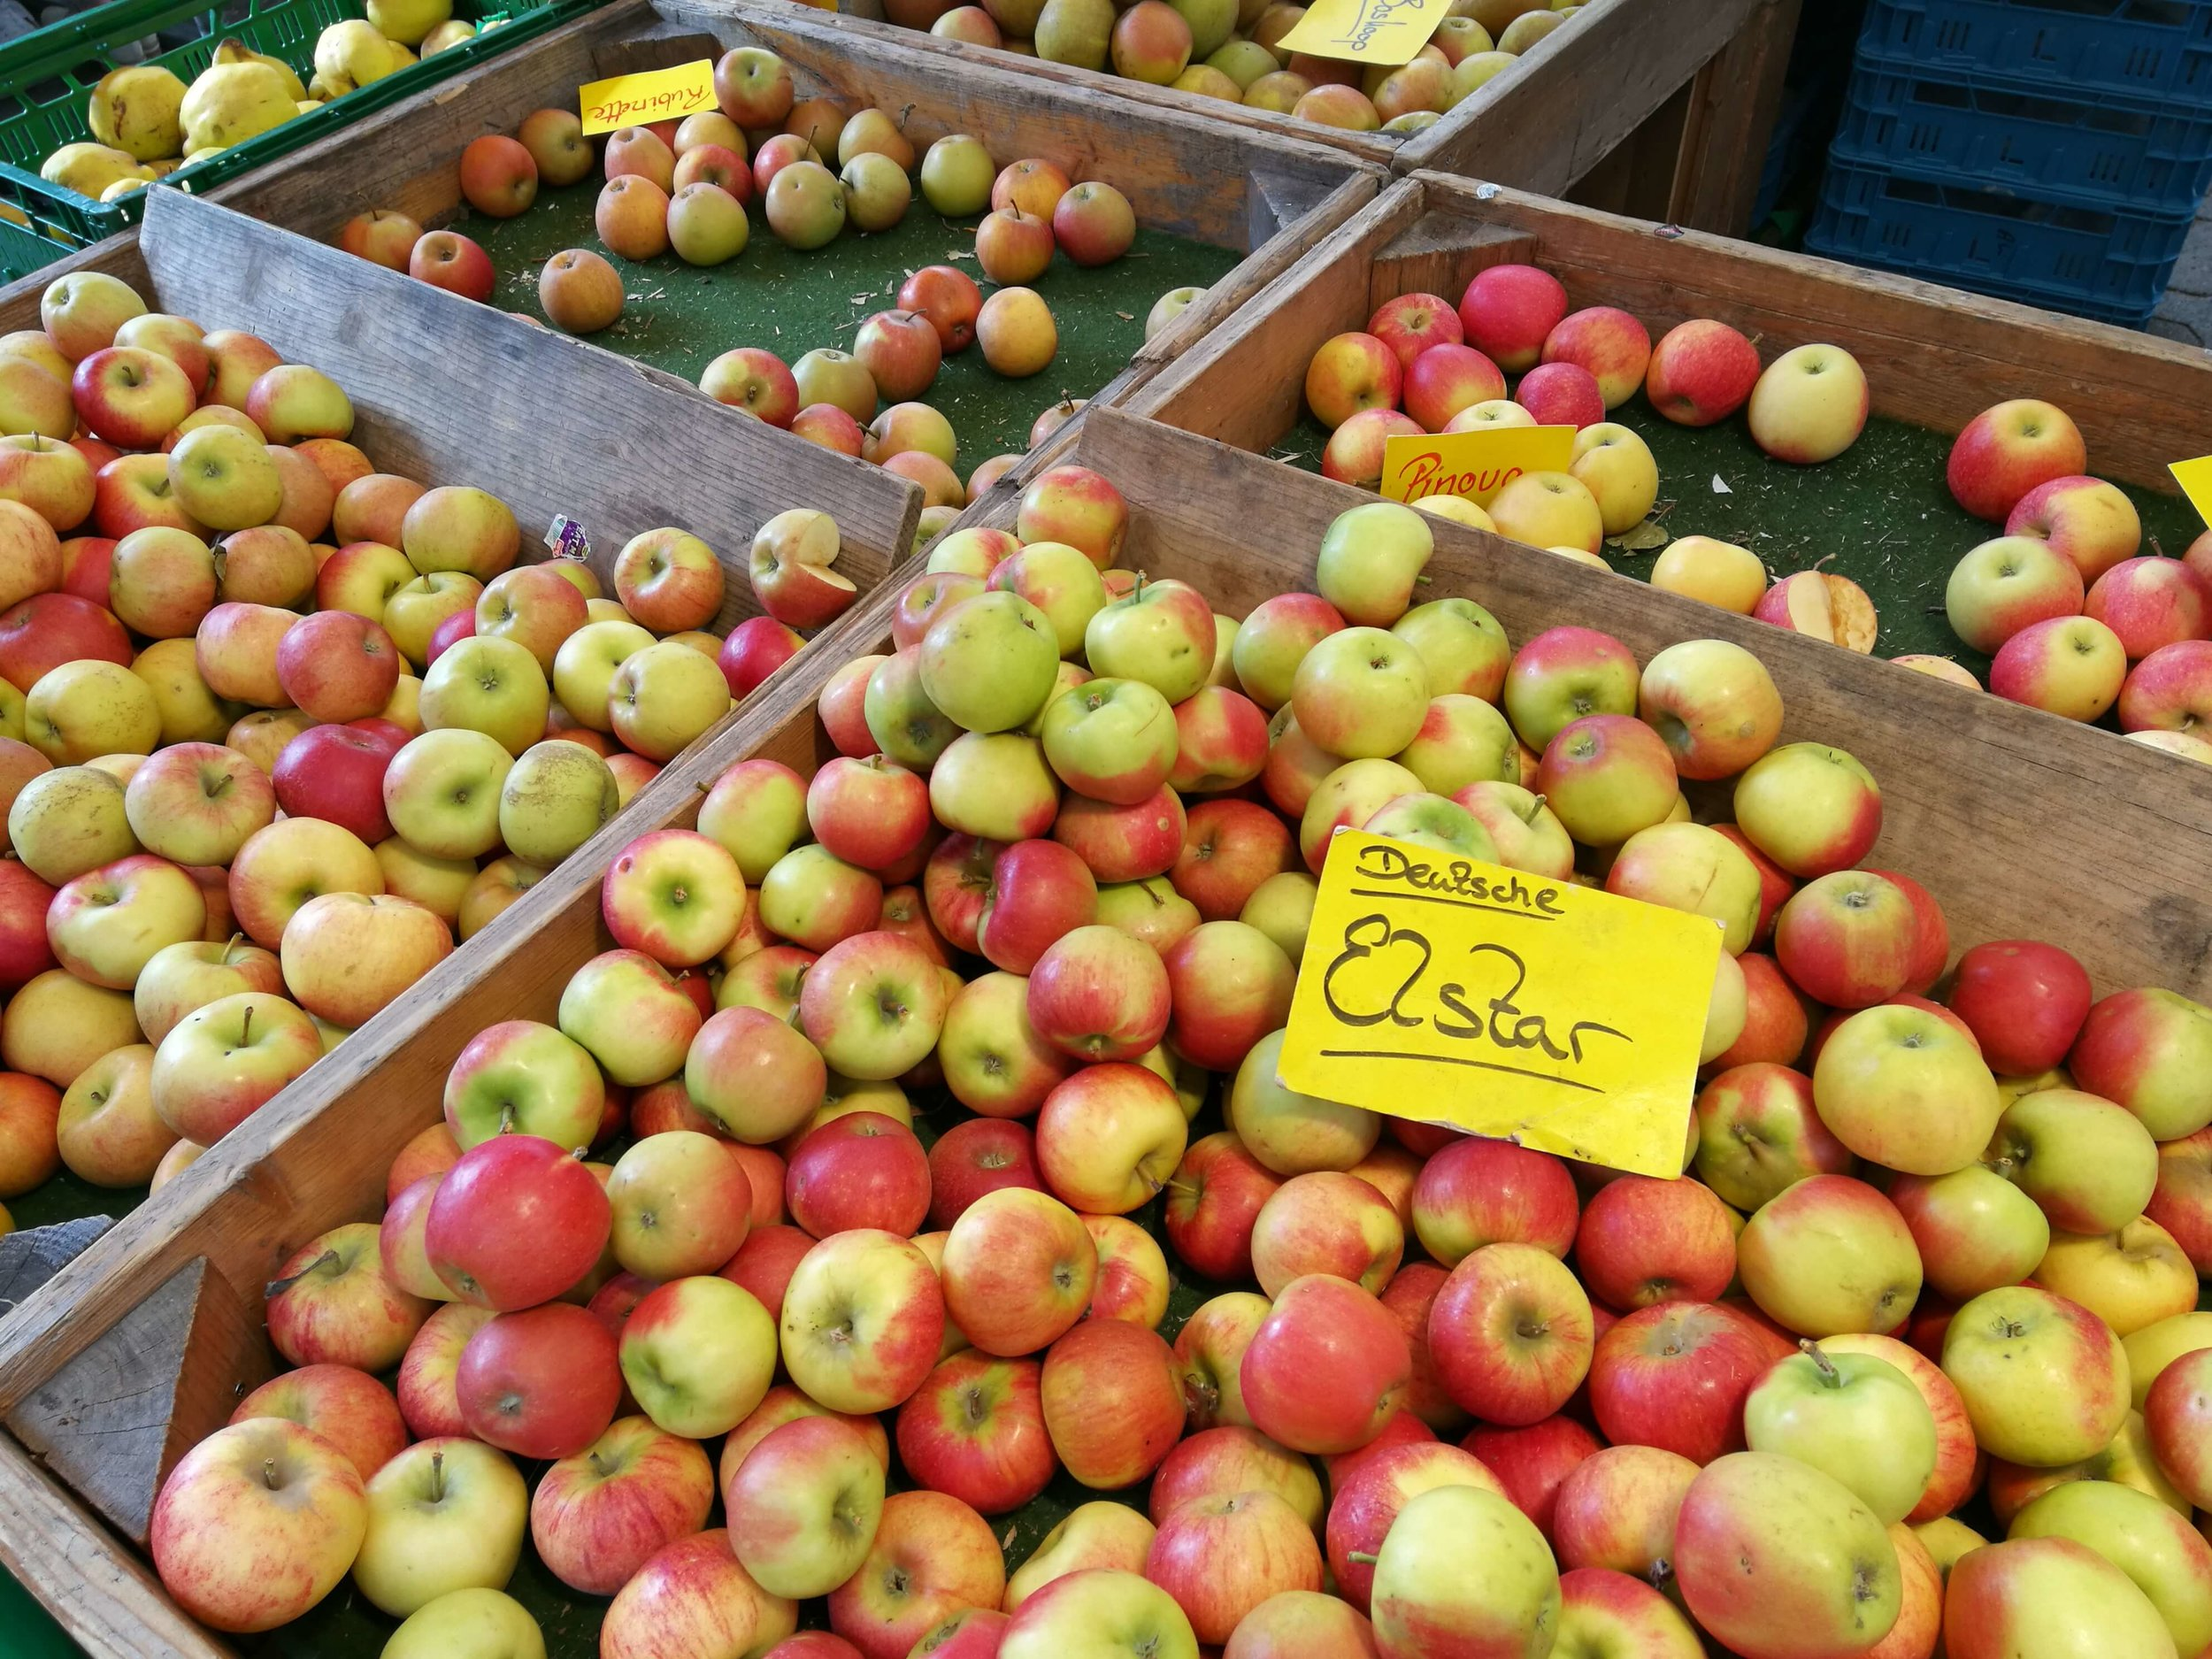 German Elstar apples at our local market